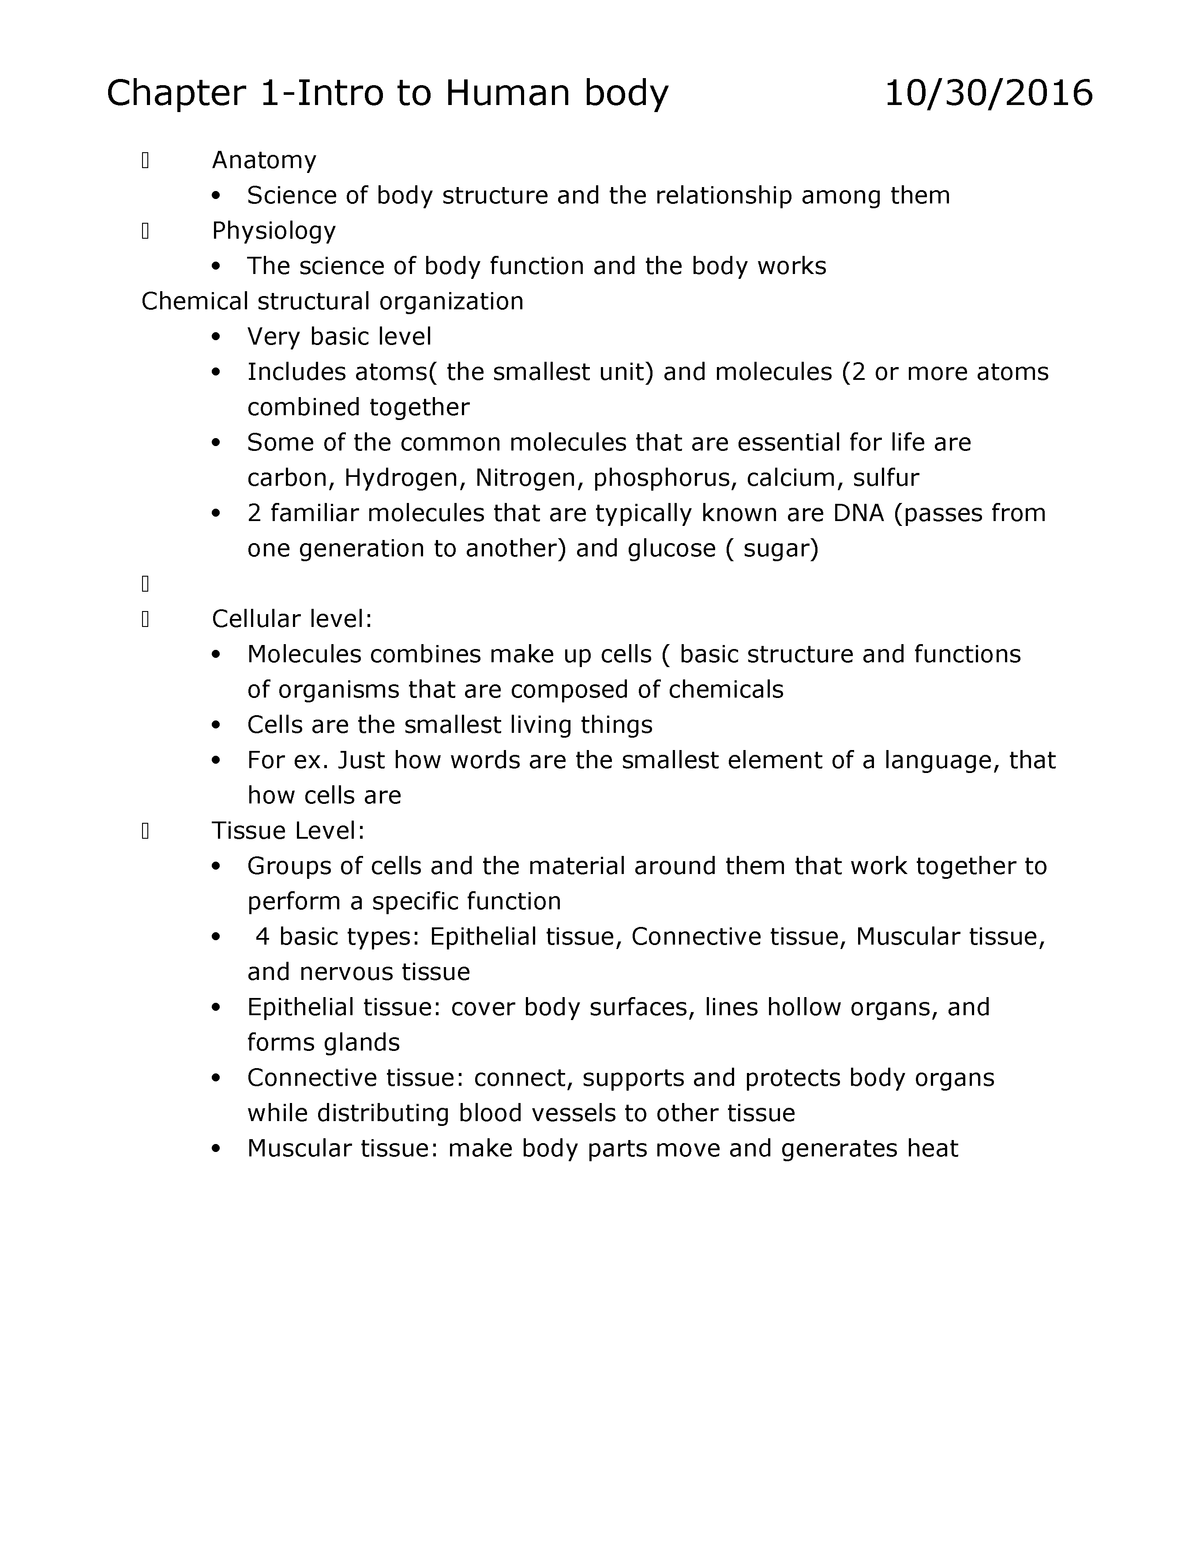 Lecture notes Chapter 1 - Human Anatomy and Physiology - Biol 235